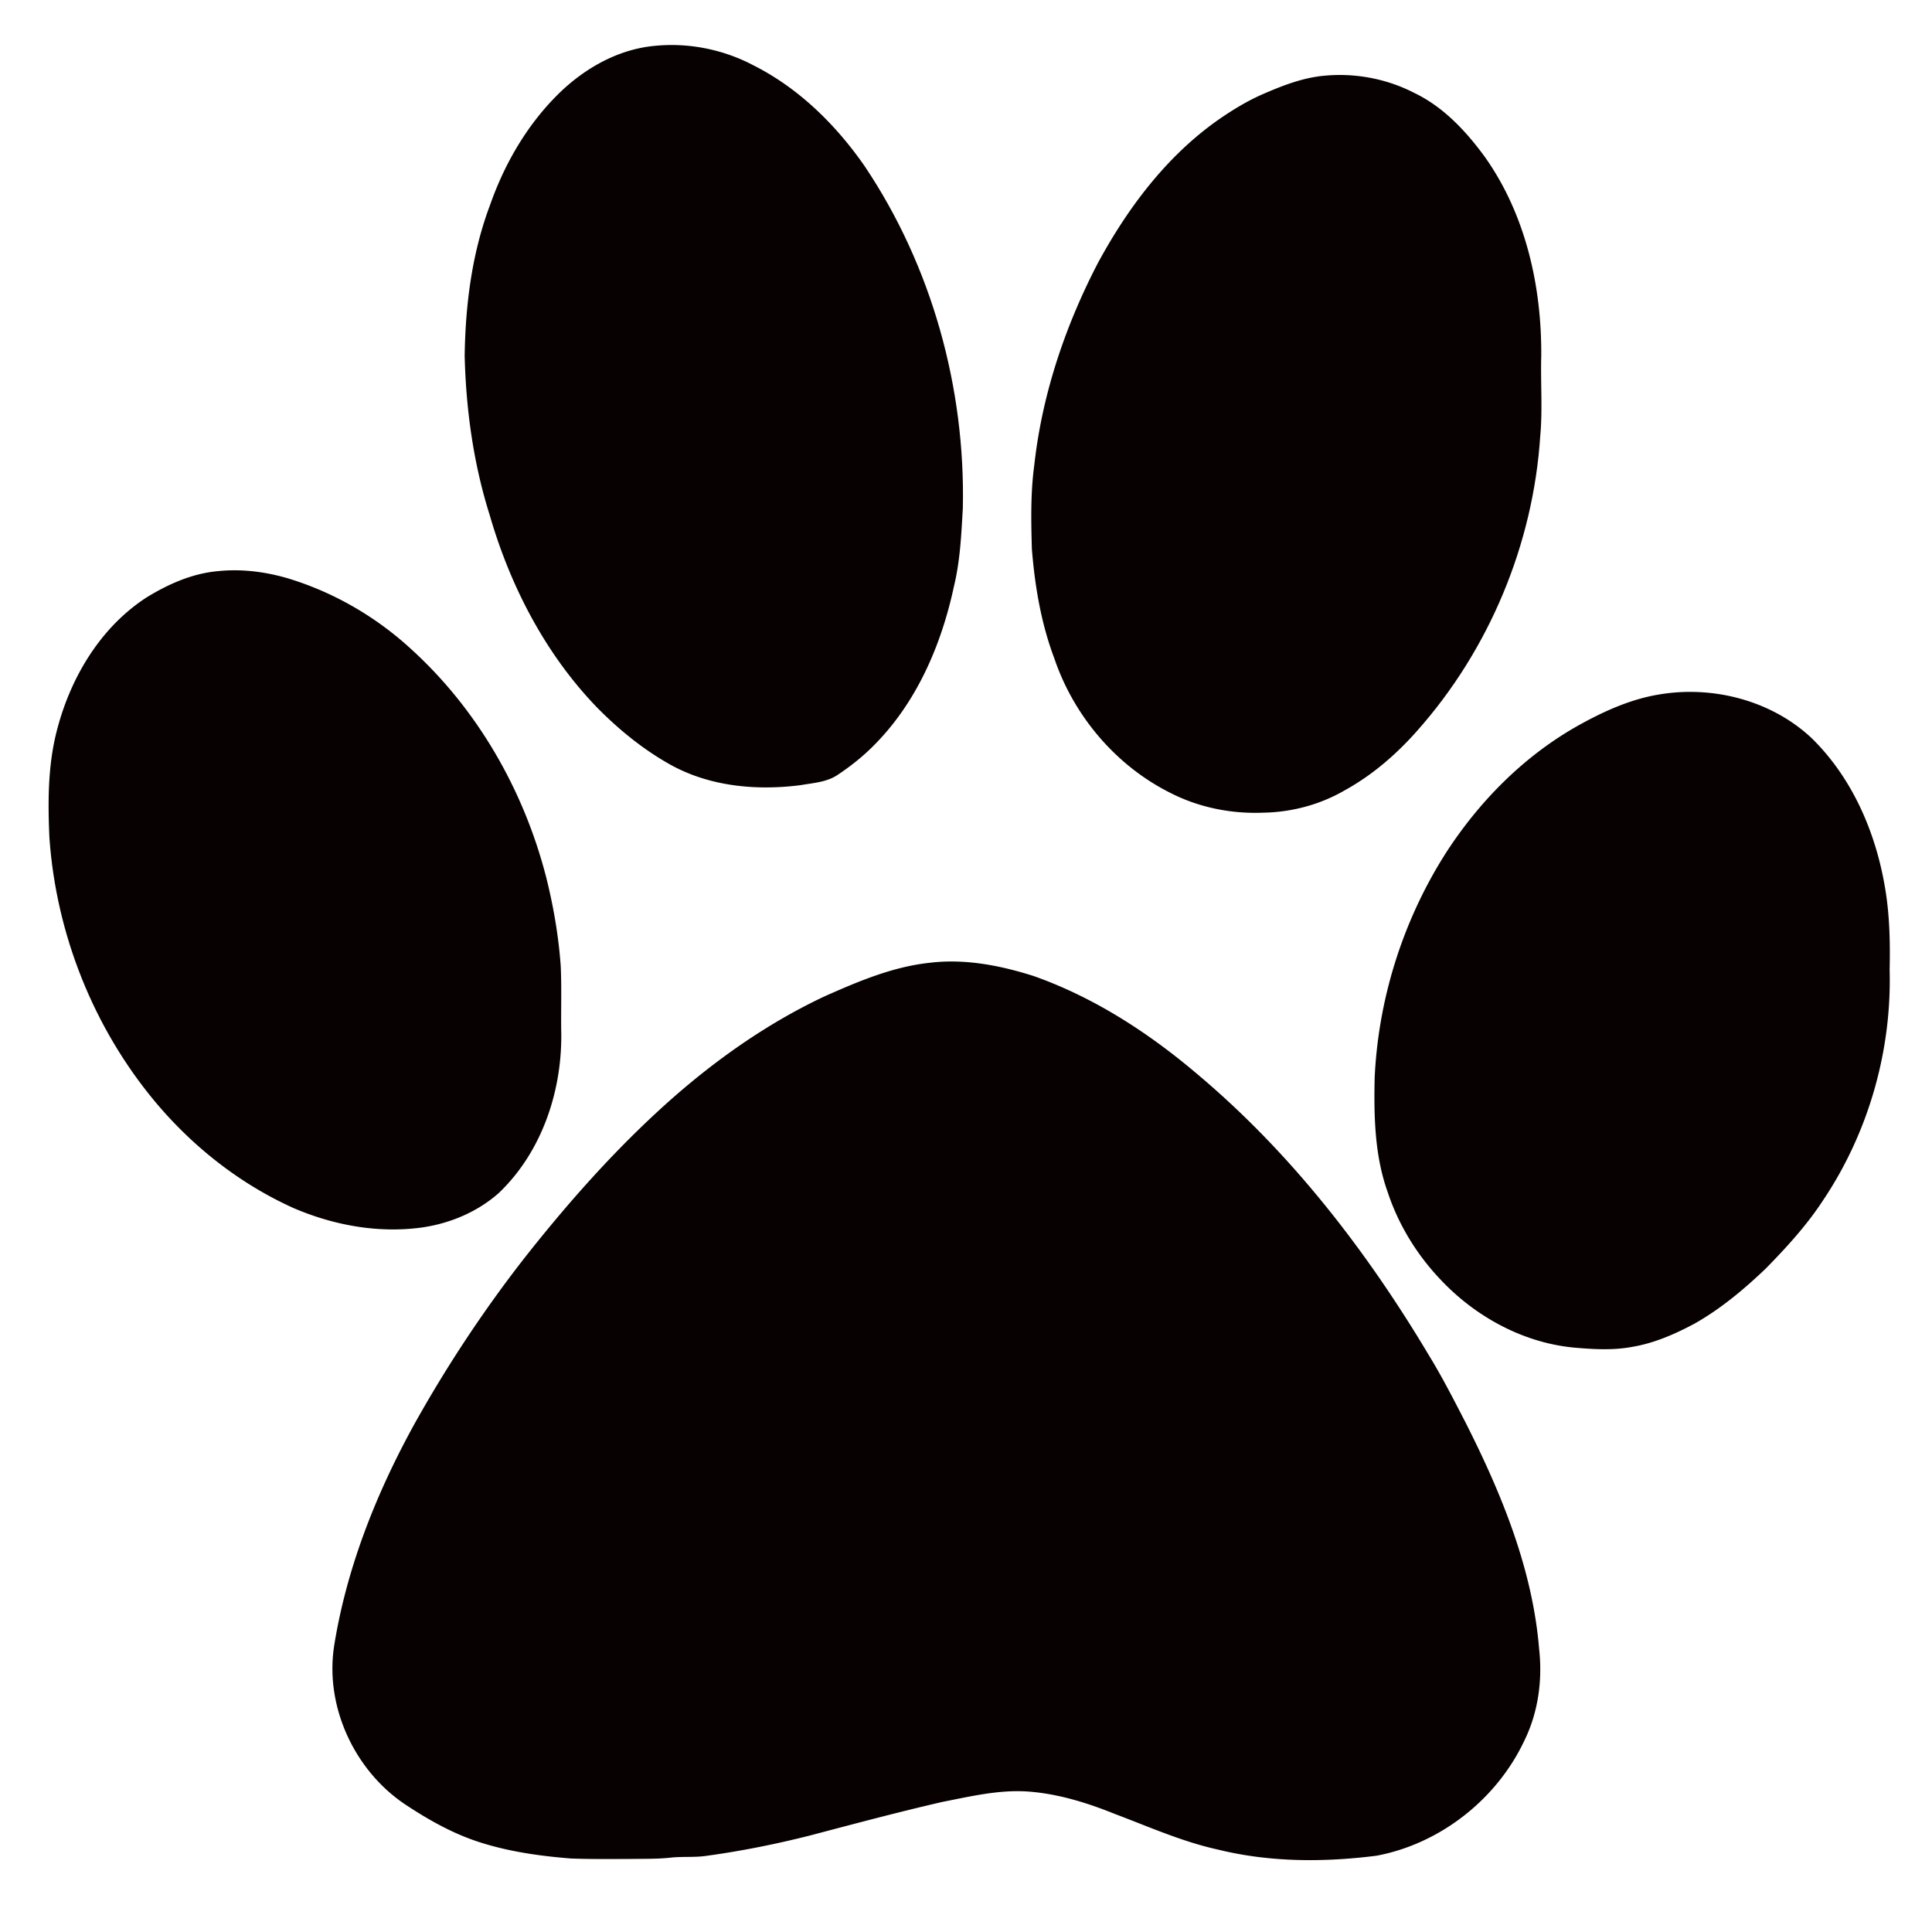 Panther Paw Clipart